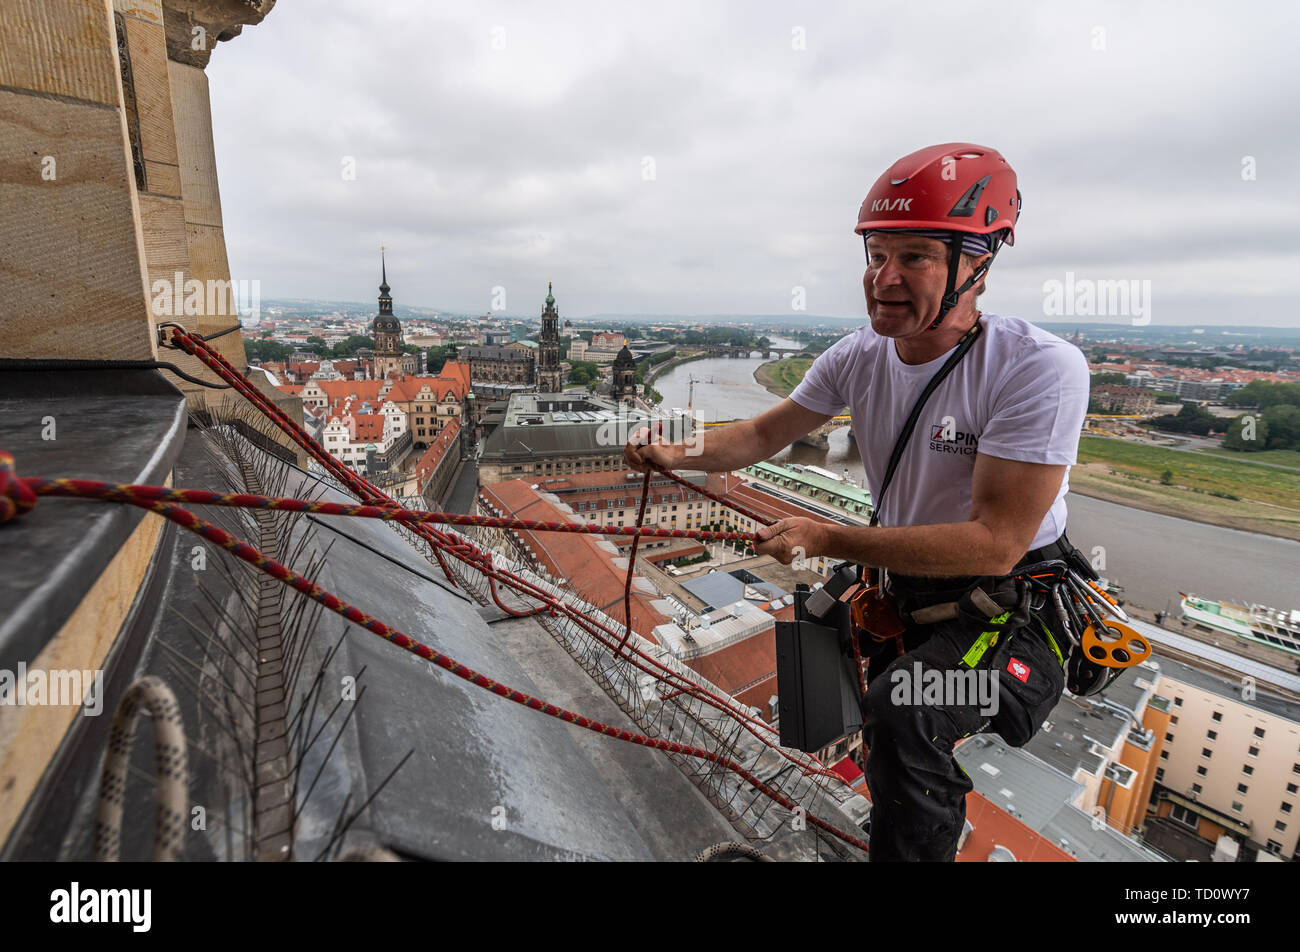 Dresden, Germany. 11th June, 2019. Heightworker Andreas Rösler climbs on the dome of the Frauenkirche to renew lights for the evening illumination of the stone dome. Maintenance and replacement work has to be carried out on a total of 40 luminaires on the lantern shaft, the small dome buildings and the rear sides of the staircase tower. The work is necessary because the light from the previous luminaires no longer reflects sufficiently from the darkening stone. Credit: Robert Michael/dpa-Zentralbild/dpa/Alamy Live News - Stock Image